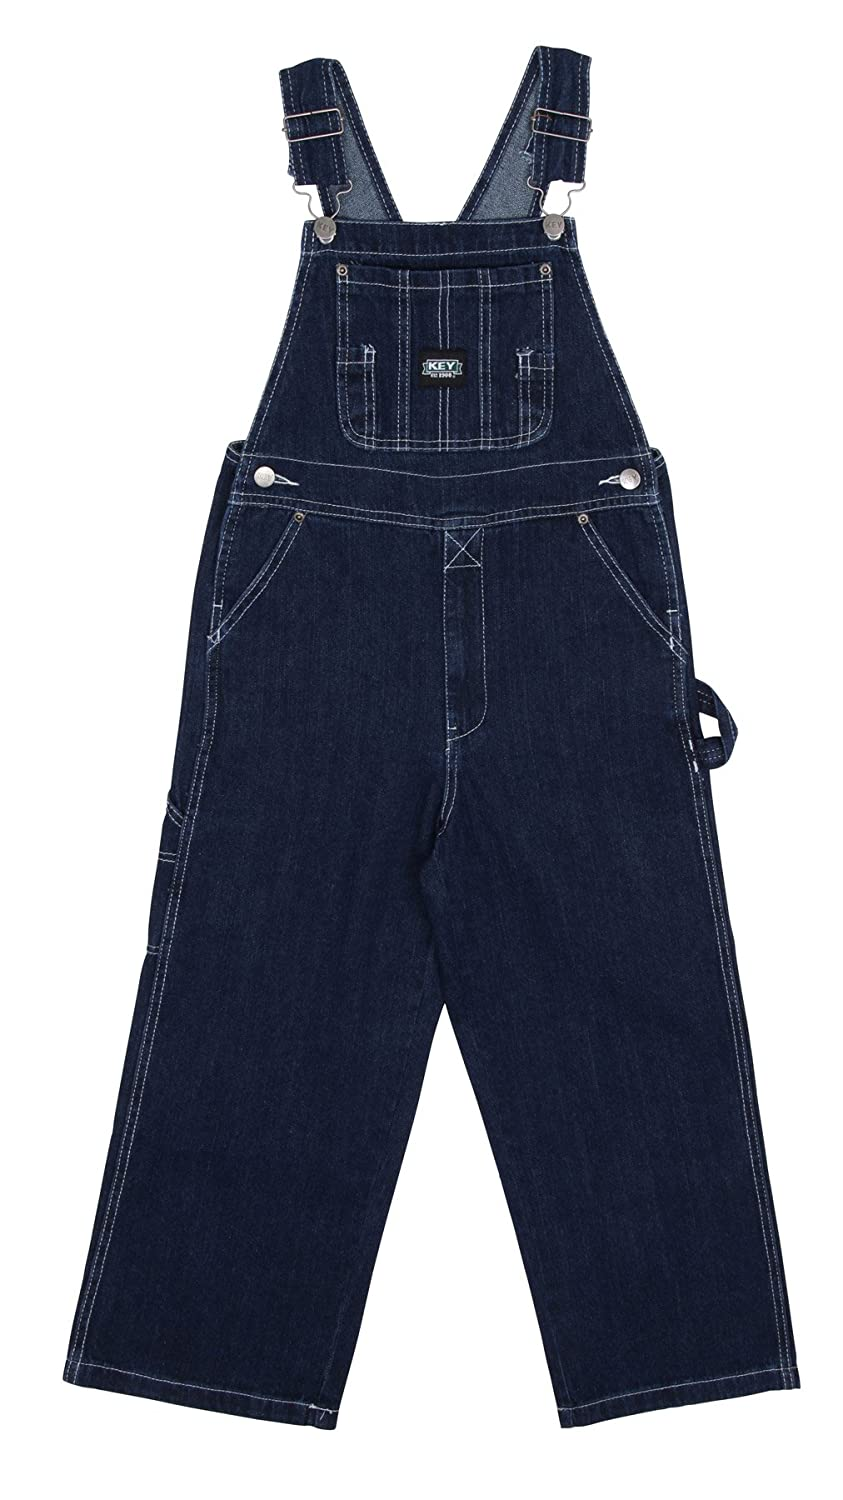 Key Industries Childrens Dungarees - Stonewash Age 4-18 Denim Dungarees Overall KID001